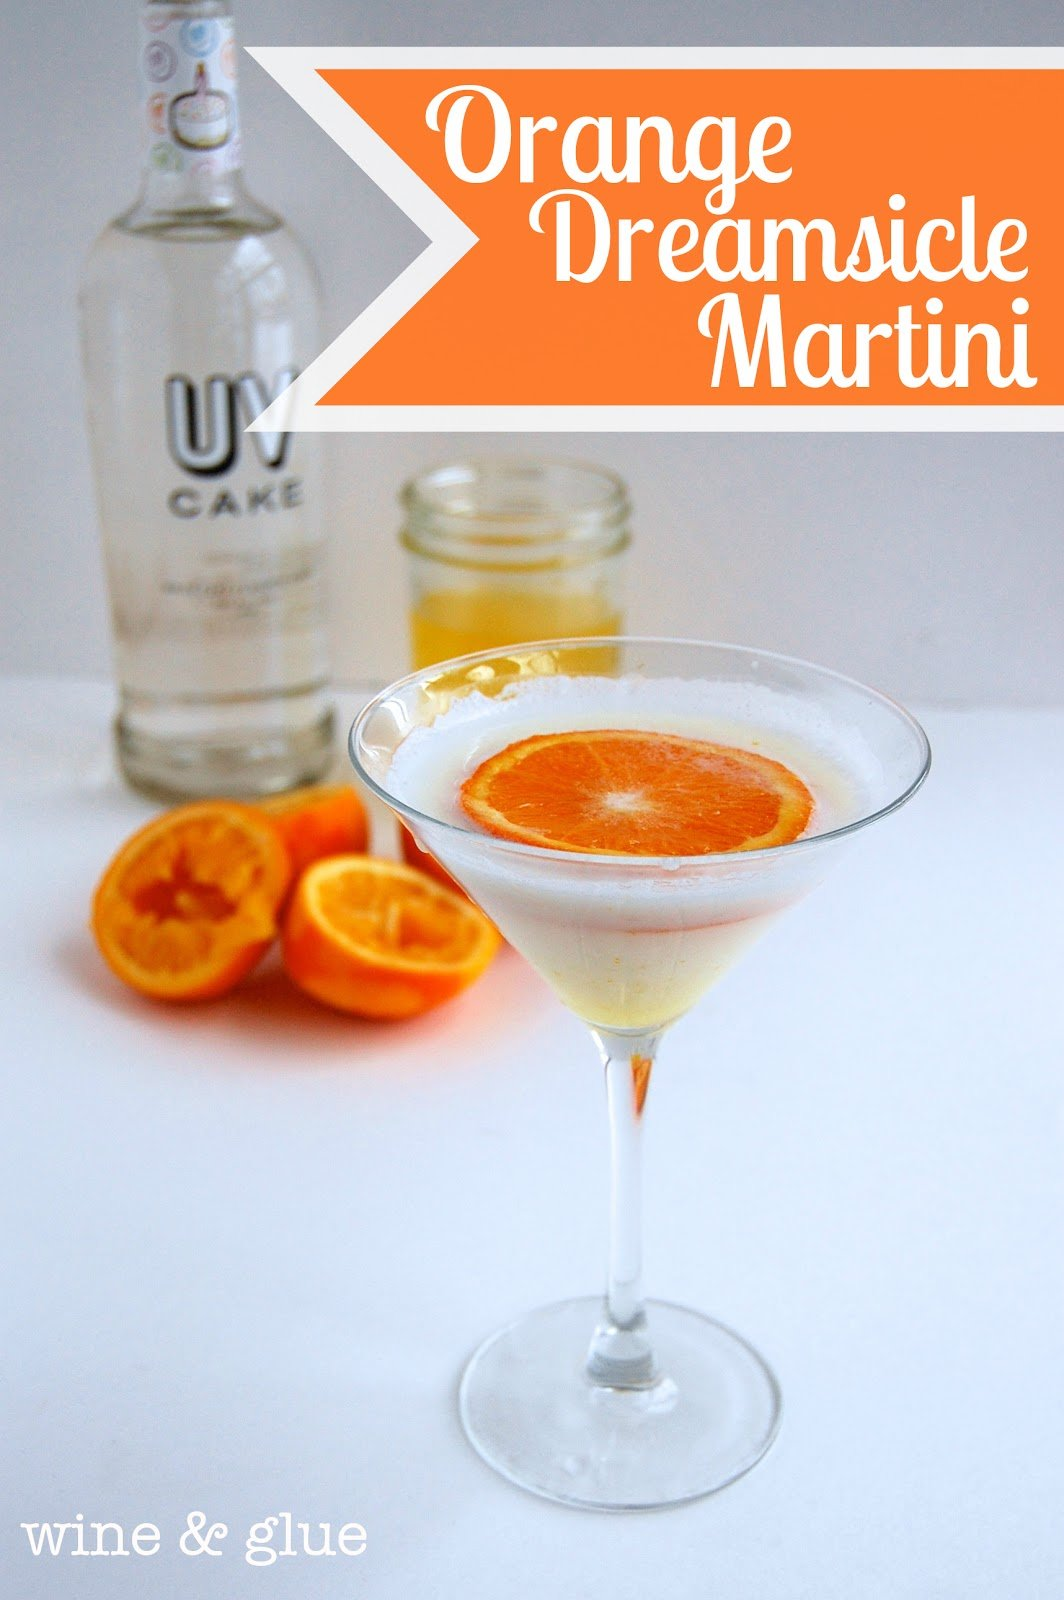 A glass of Orange Dreamsicle Martini that is an opaque white color with a circular slice of an orange.